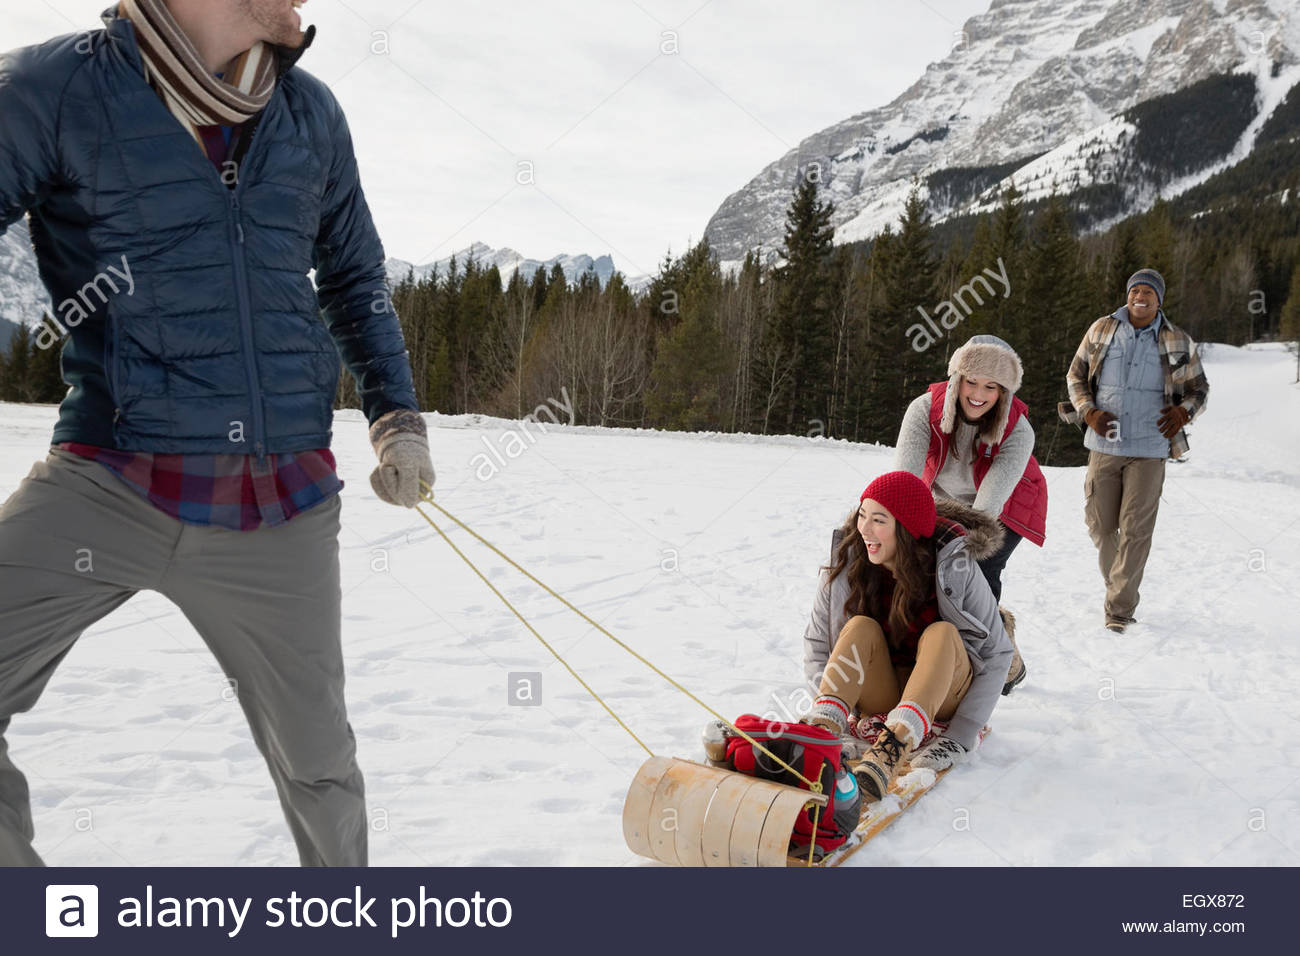 Couples sledding in snowy field below mountains - Stock Image